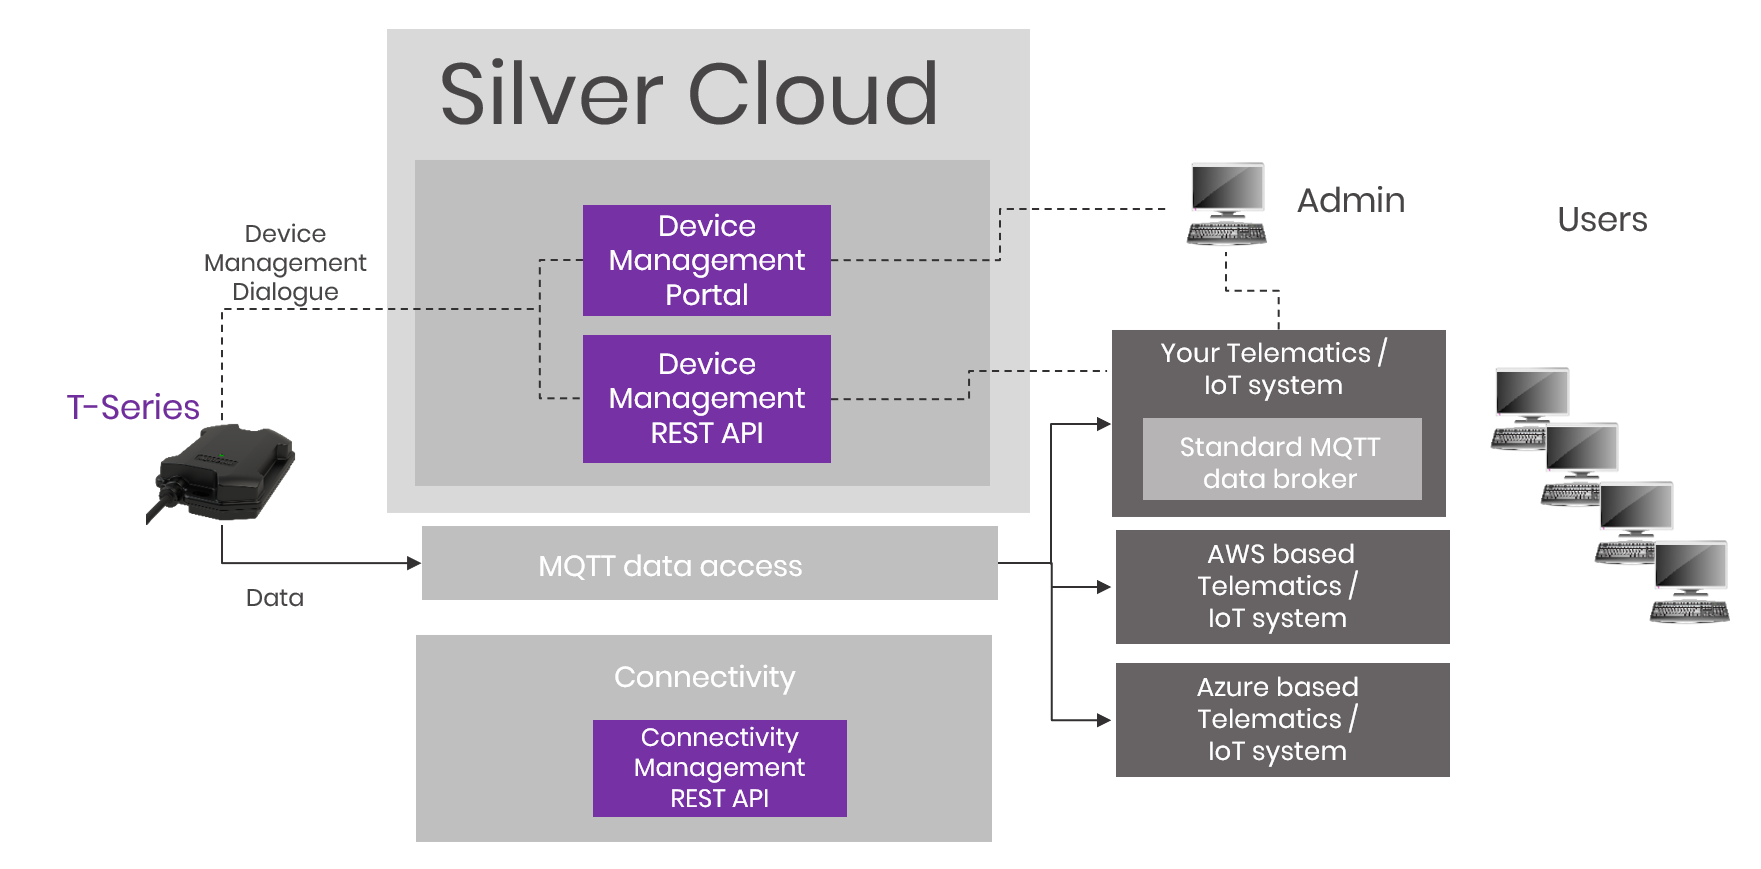 Aplicom SIlver CLoud overview, device managemetn, MQTT, Azure AWS